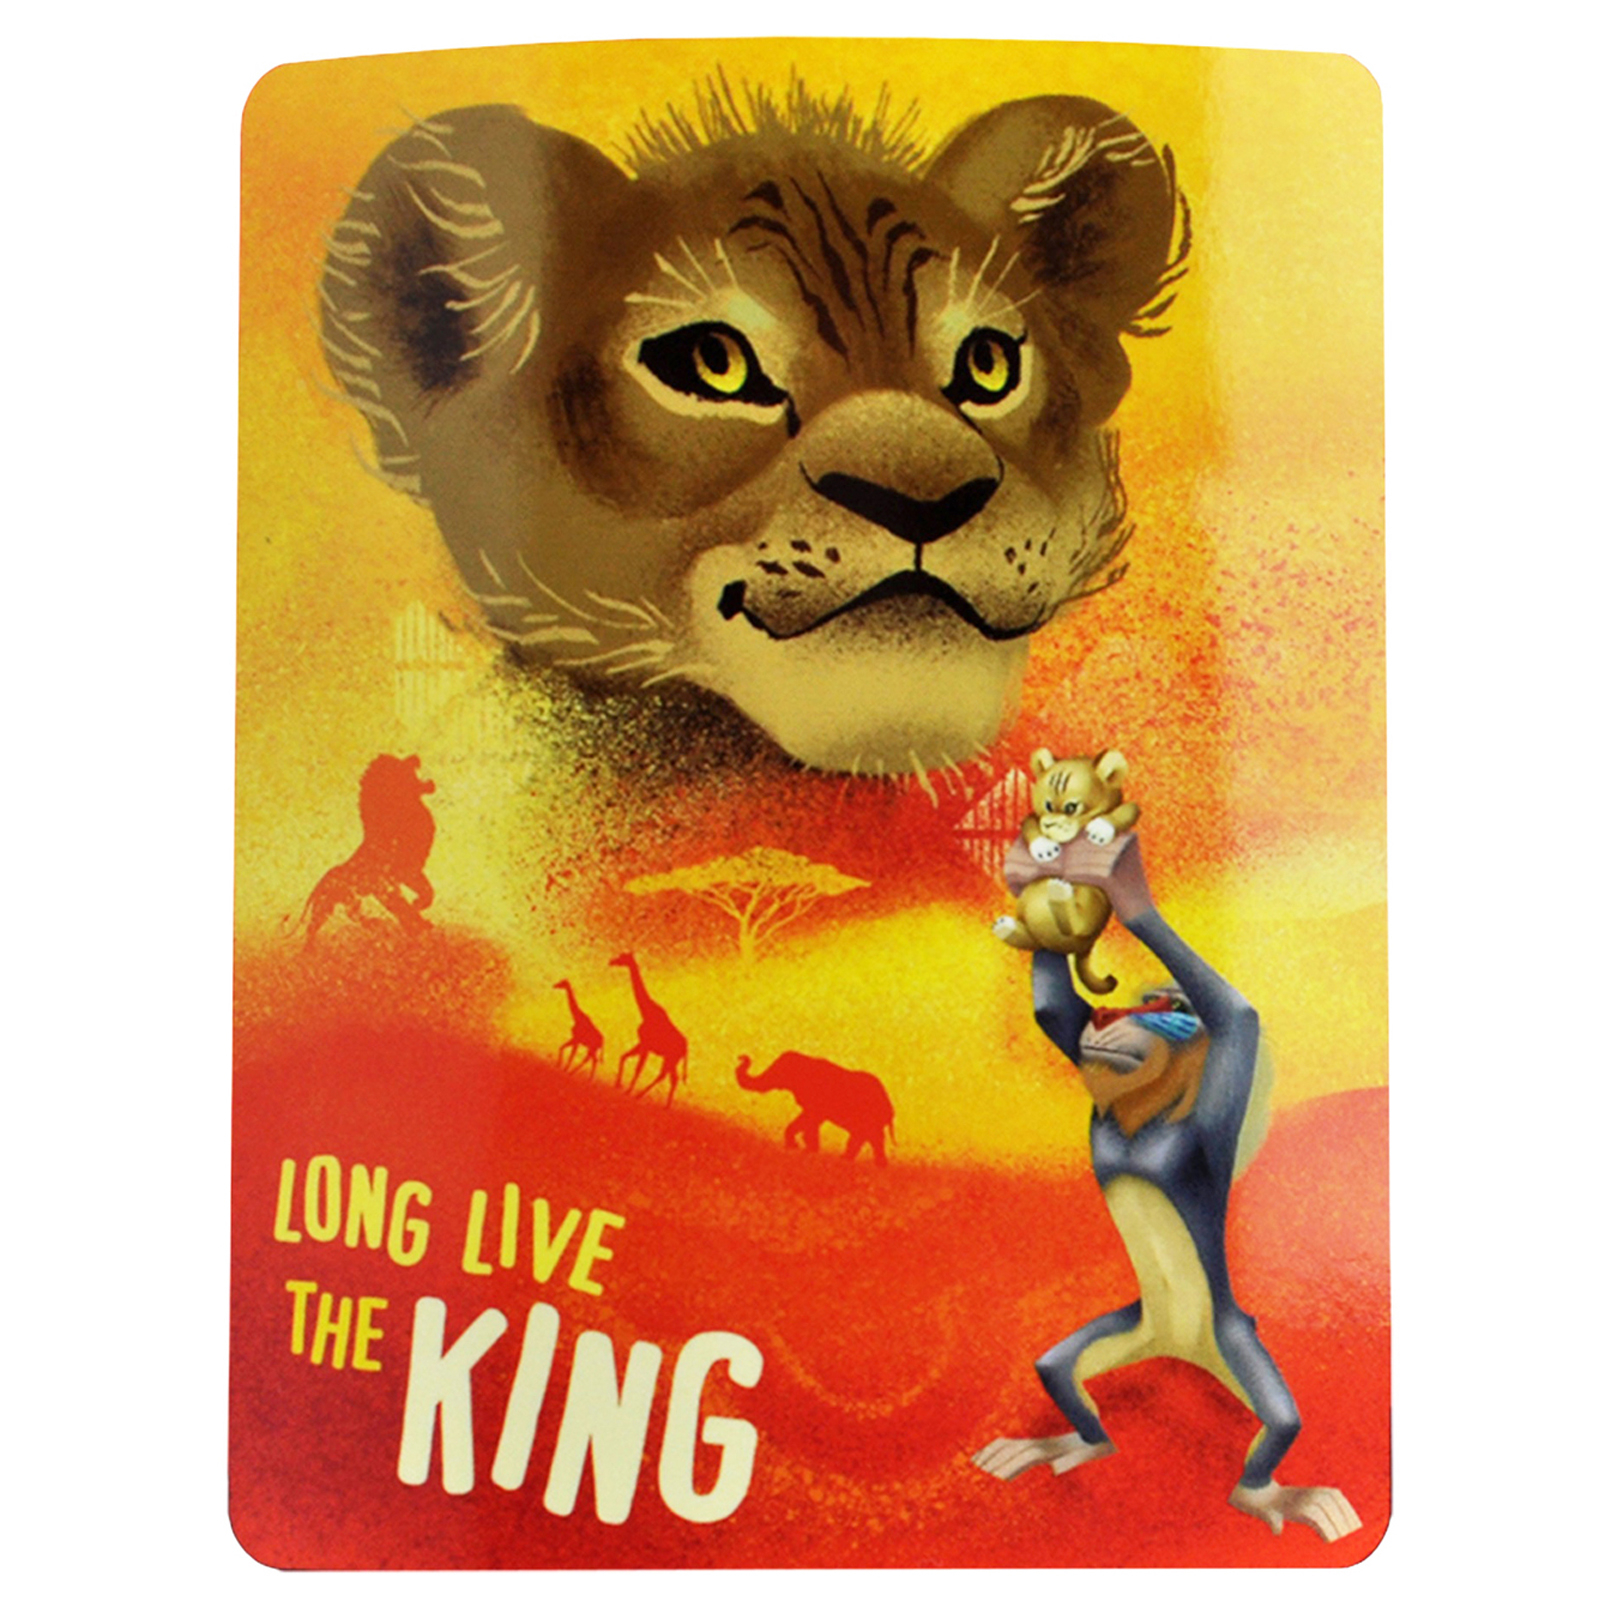 The Lion King Fleece Throw Blanket 45 x 60 Inch Kids Decor